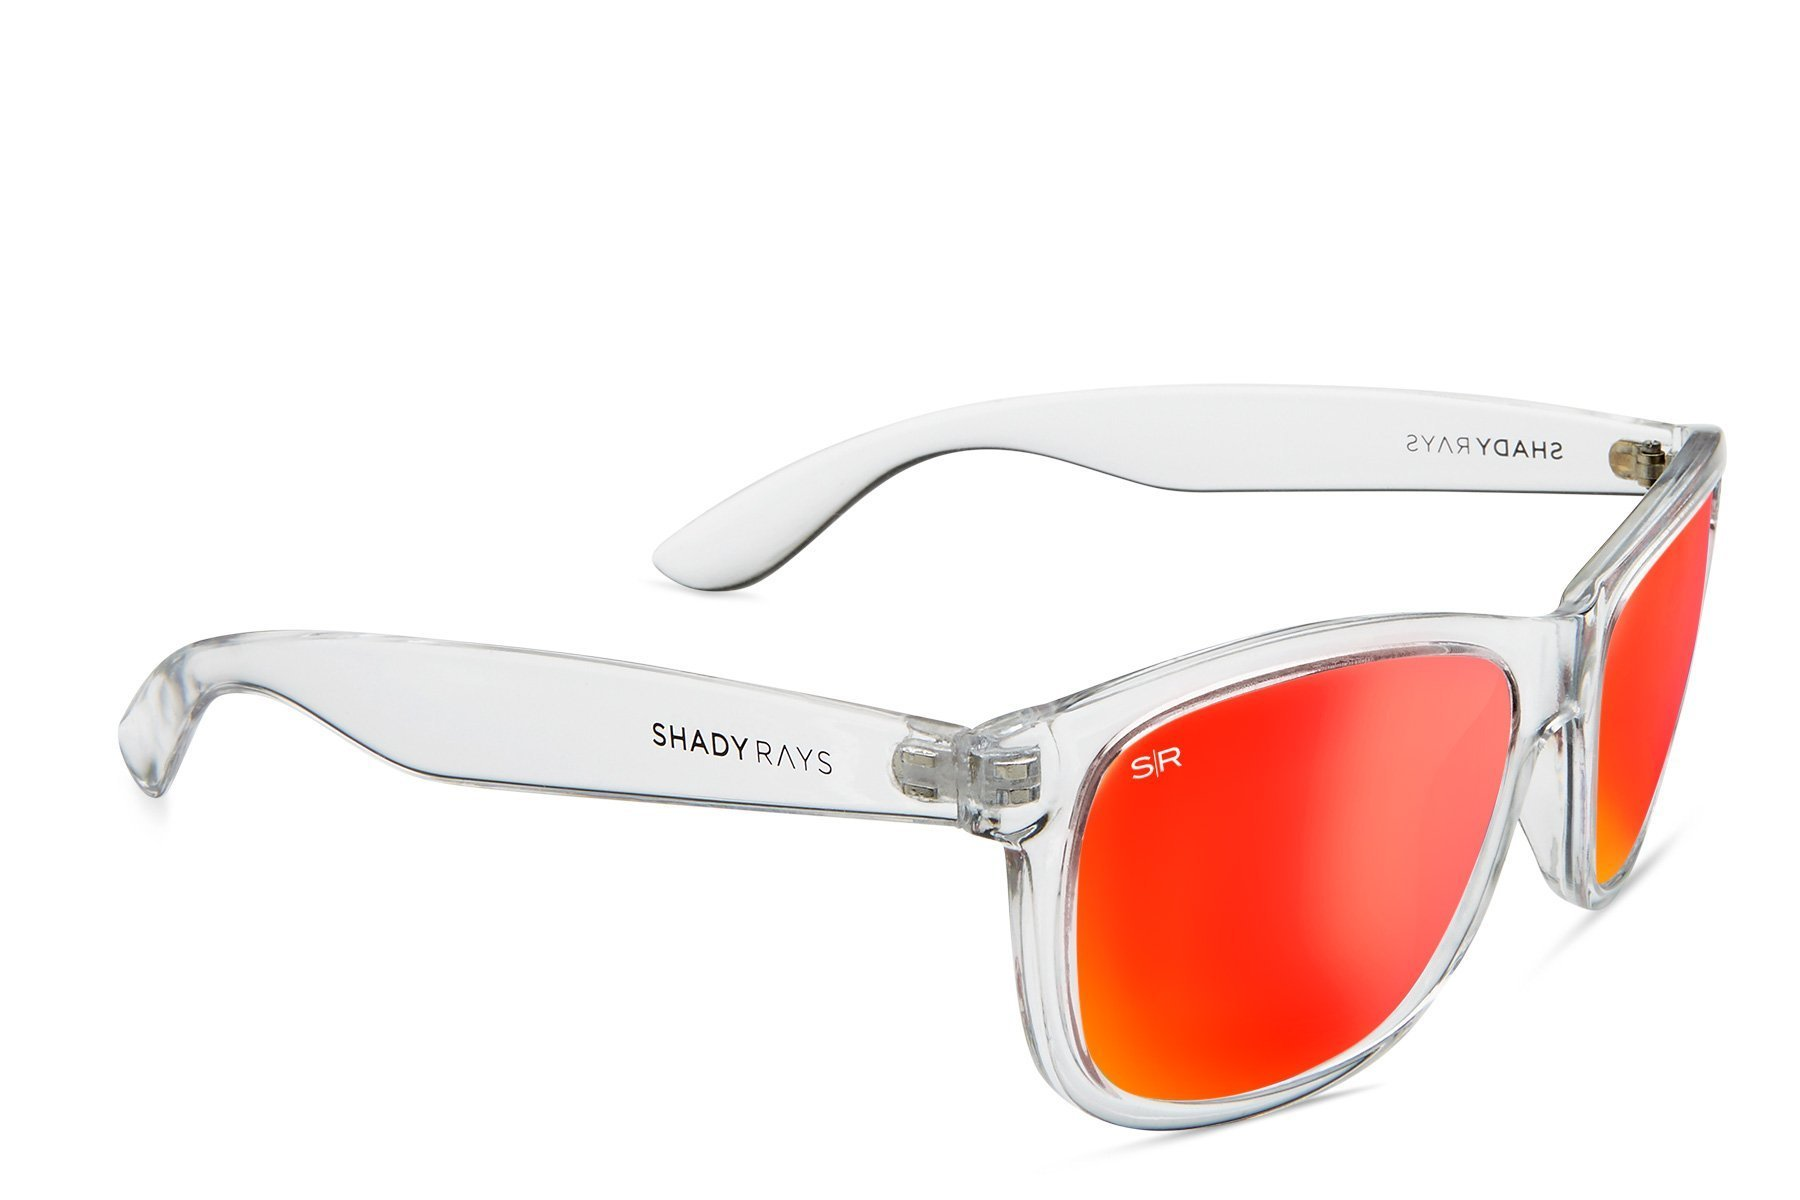 5dc30b8fca Shady Rays Signature Series Infrared Ice Polarized EXTREME · Signature  Series EXTREME Infrared Ice Polarized